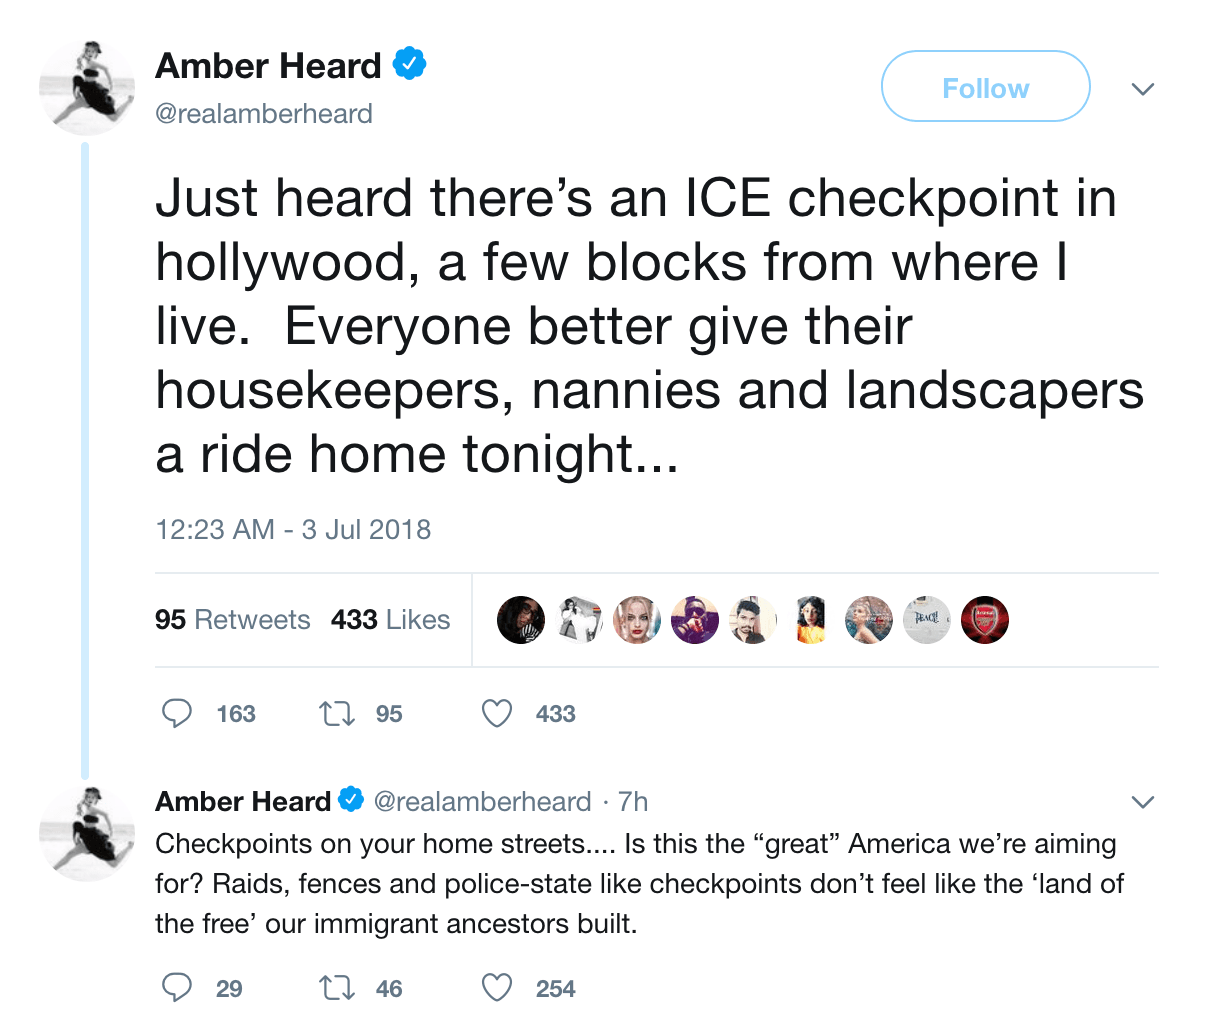 Amber Heard slammed for warning nannies and landscapers about ICE checkpoint